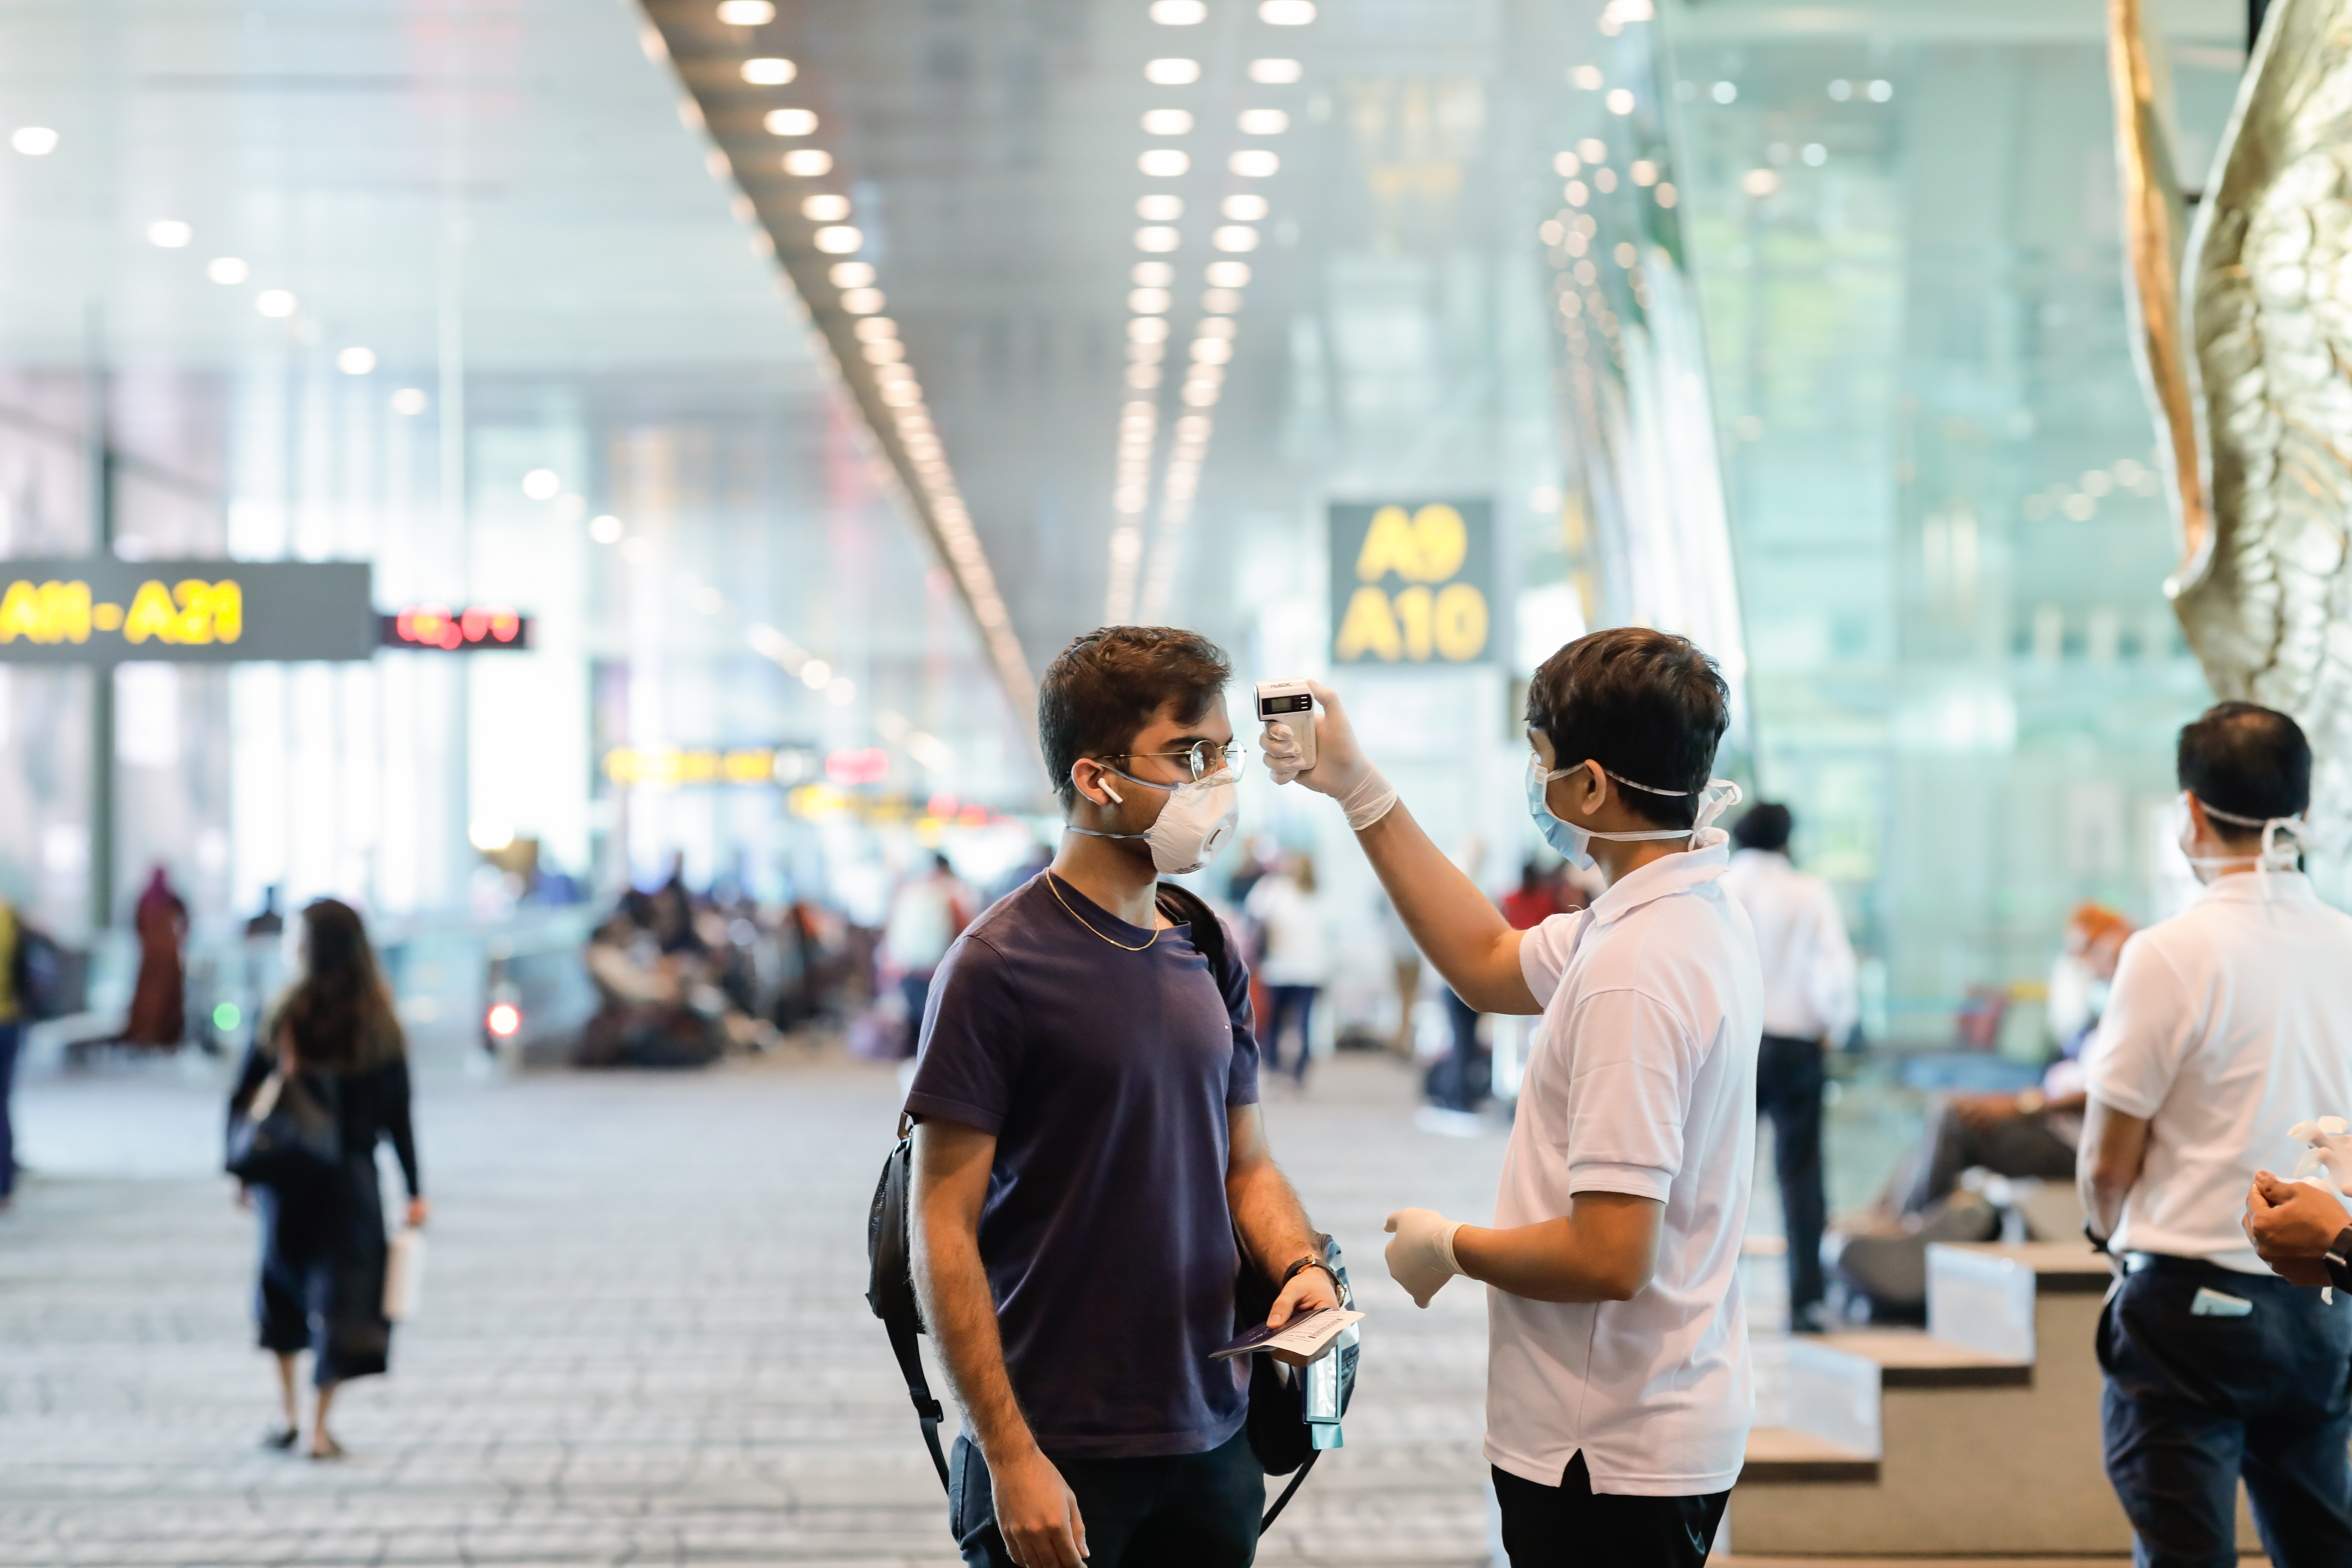 Following the successful trials by Singapore Airlines, the Singapore Health and Border Control authorities will accept the IATA Travel Pass as a valid form of presentation of COVID-19 pre-departure test results for entry into Singapore.